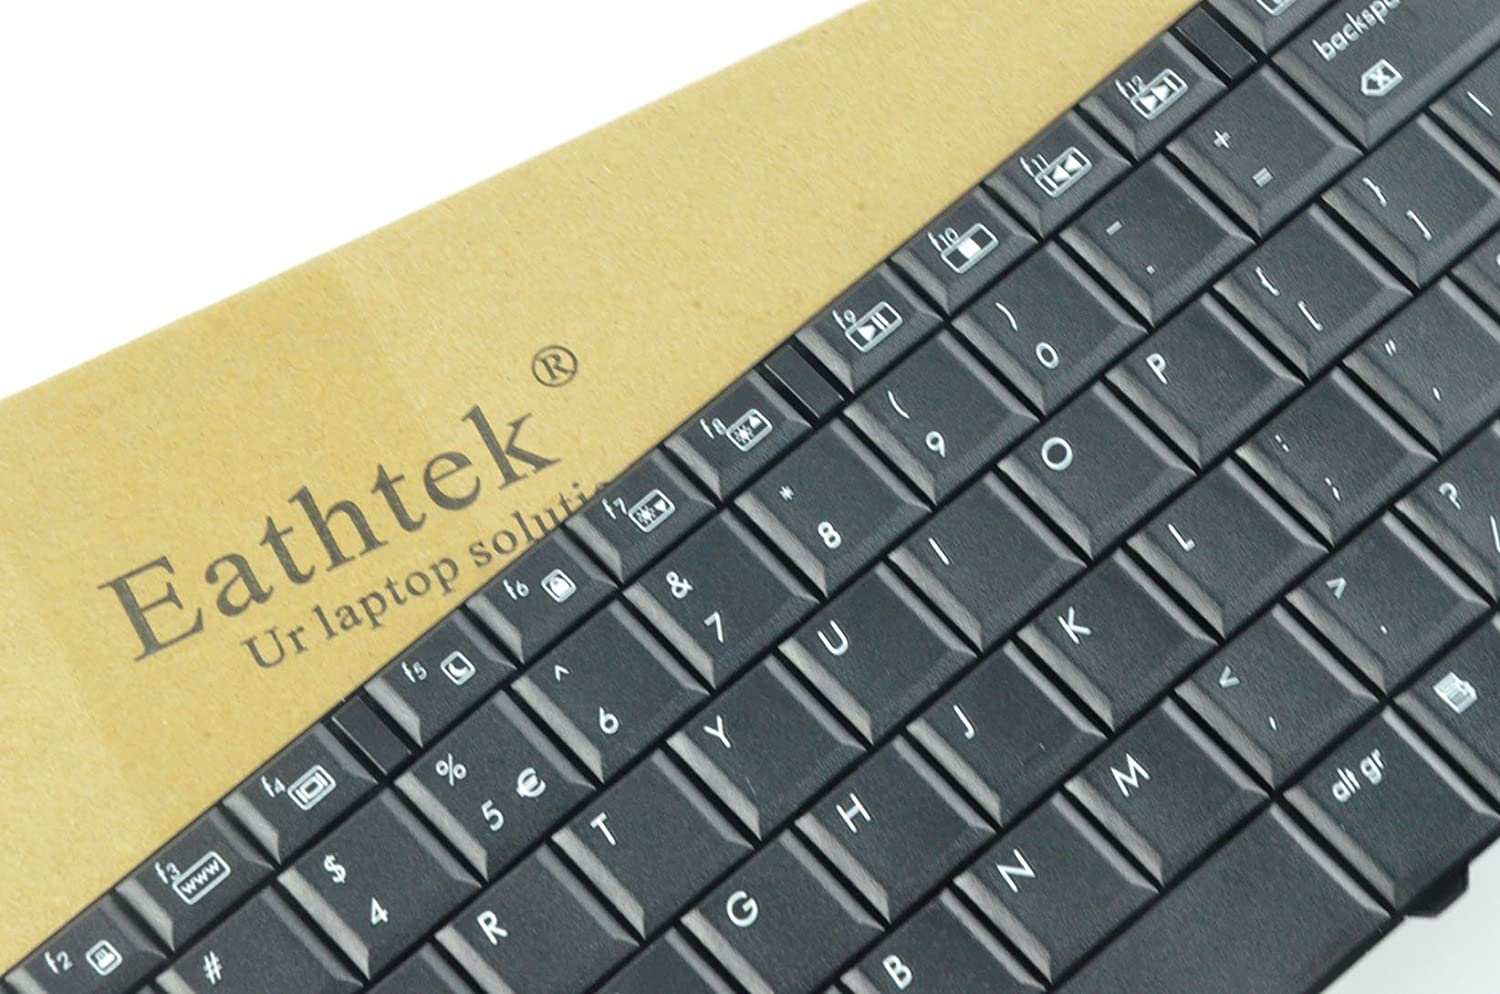 Eathtek Replacement Keyboard for HP Pavilion G60 Compaq Presarion CQ60 CQ60-100 G60-100 CQ60-200 CQ60-300 Series Black US Layout 90.4AH07.S01 9J.N0Y82.A01 Compatible with part# 496771-001 NSK-HAA01 MP-08A93US-442